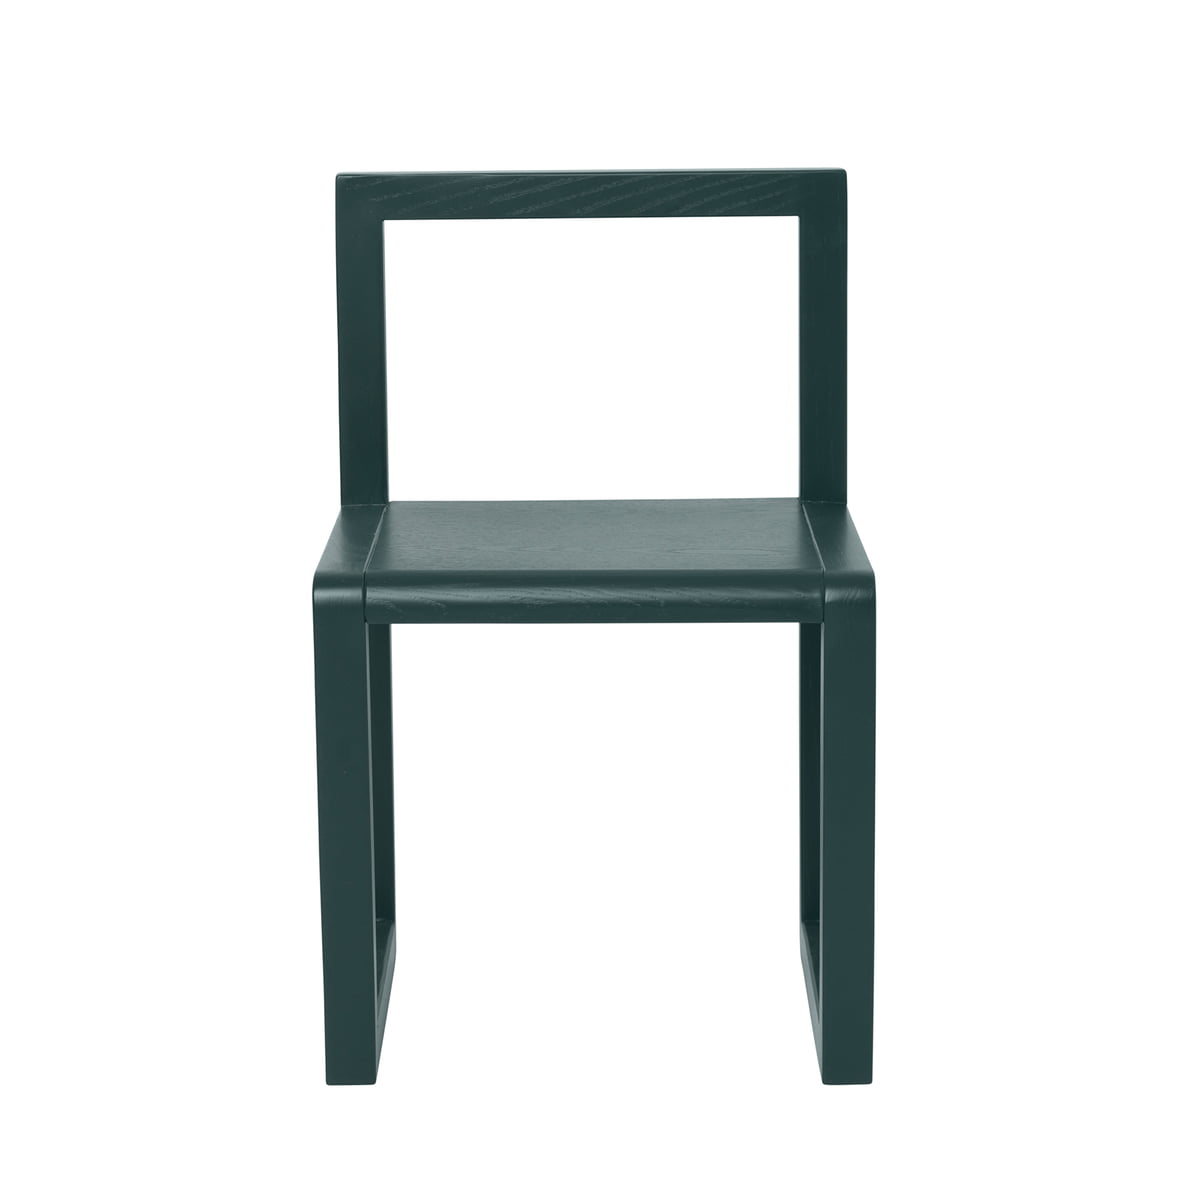 architect furniture. Buy Little Architect Chair By Ferm Living In Dark Green Furniture I